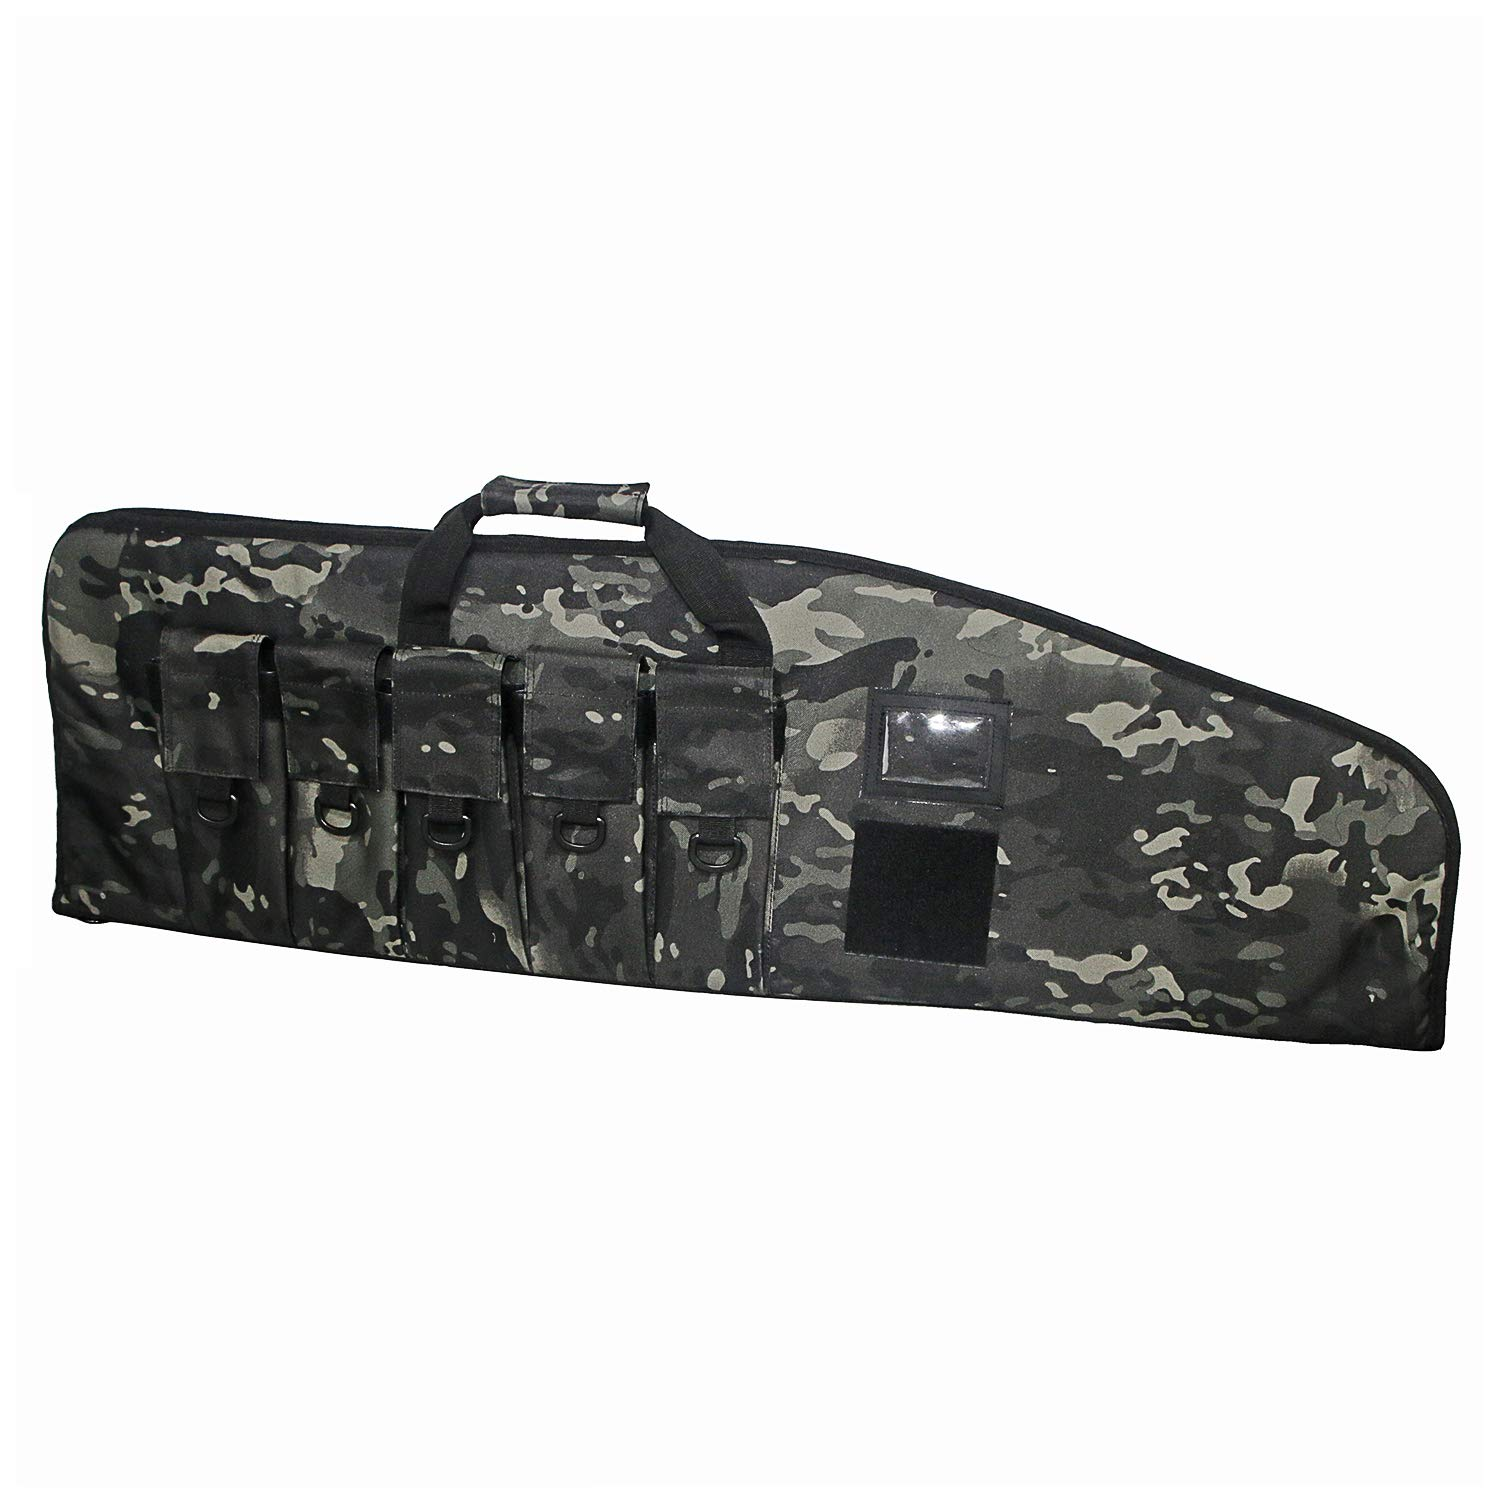 ARMYCAMOUSA Rifle Bag Outdoor Tactical Carbine Cases Water dust Resistant Long Gun Case Bag with Five Magazine Pouches for Hunting Shooting Range Sports Storage and Transport (Black Multicam, 38'') by ARMYCAMOUSA